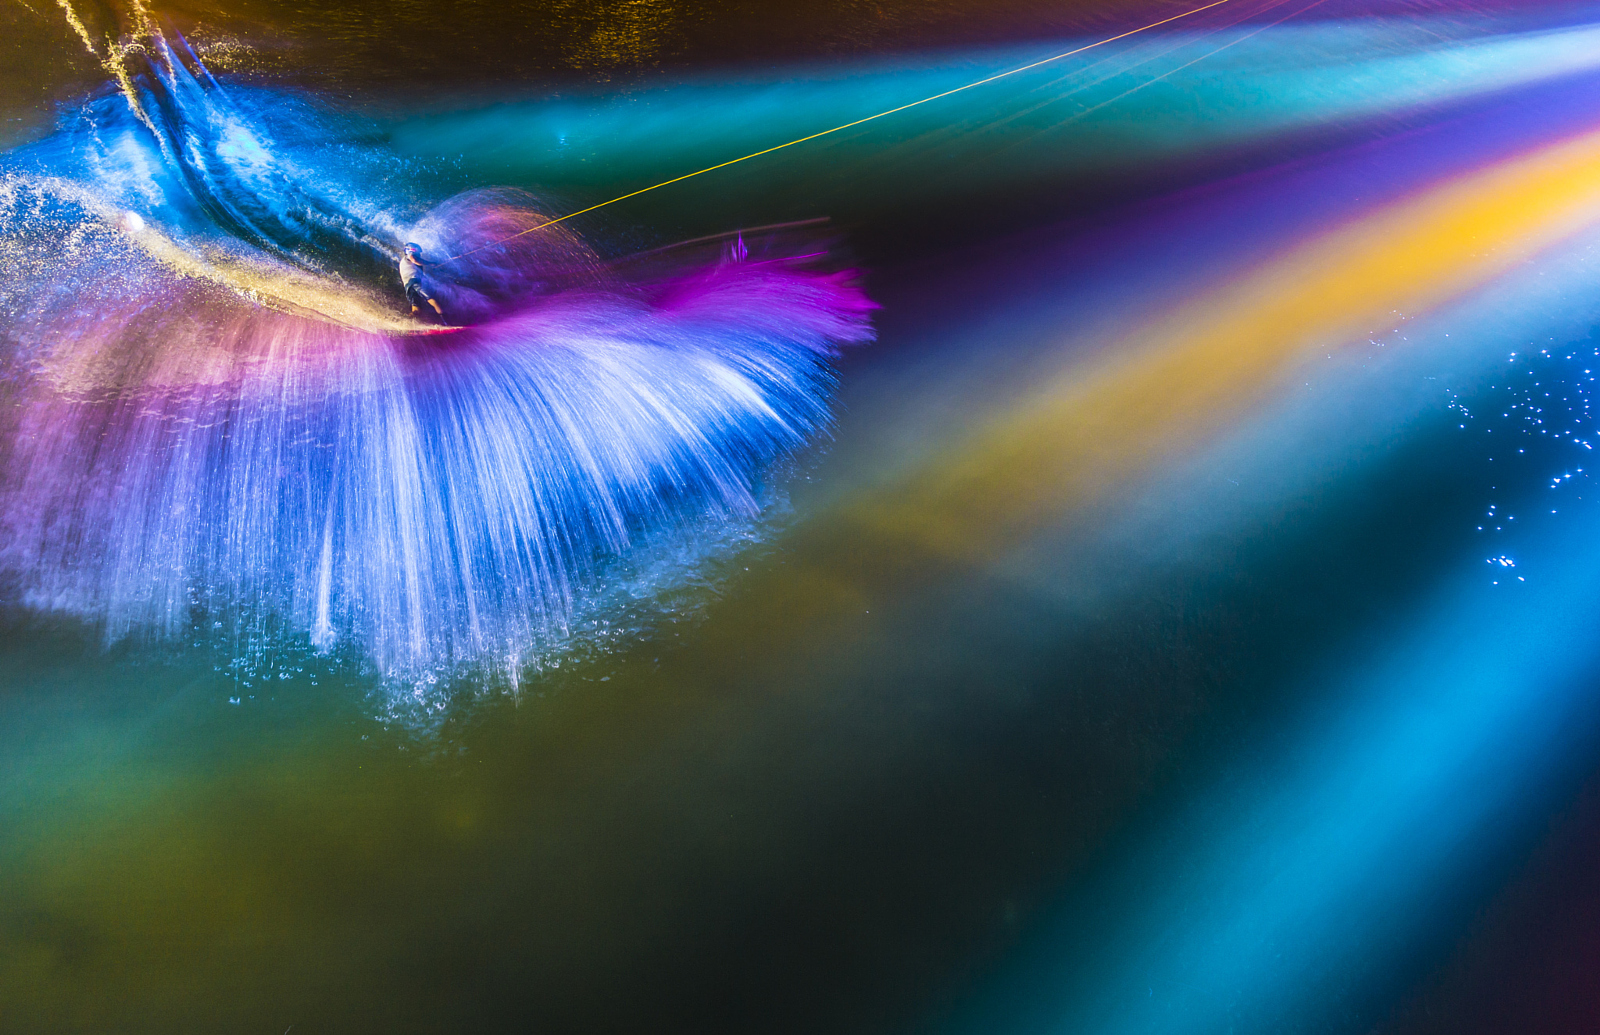 Hummingbird Or Wakeboarder? Get The Story Behind This Surreal Shot